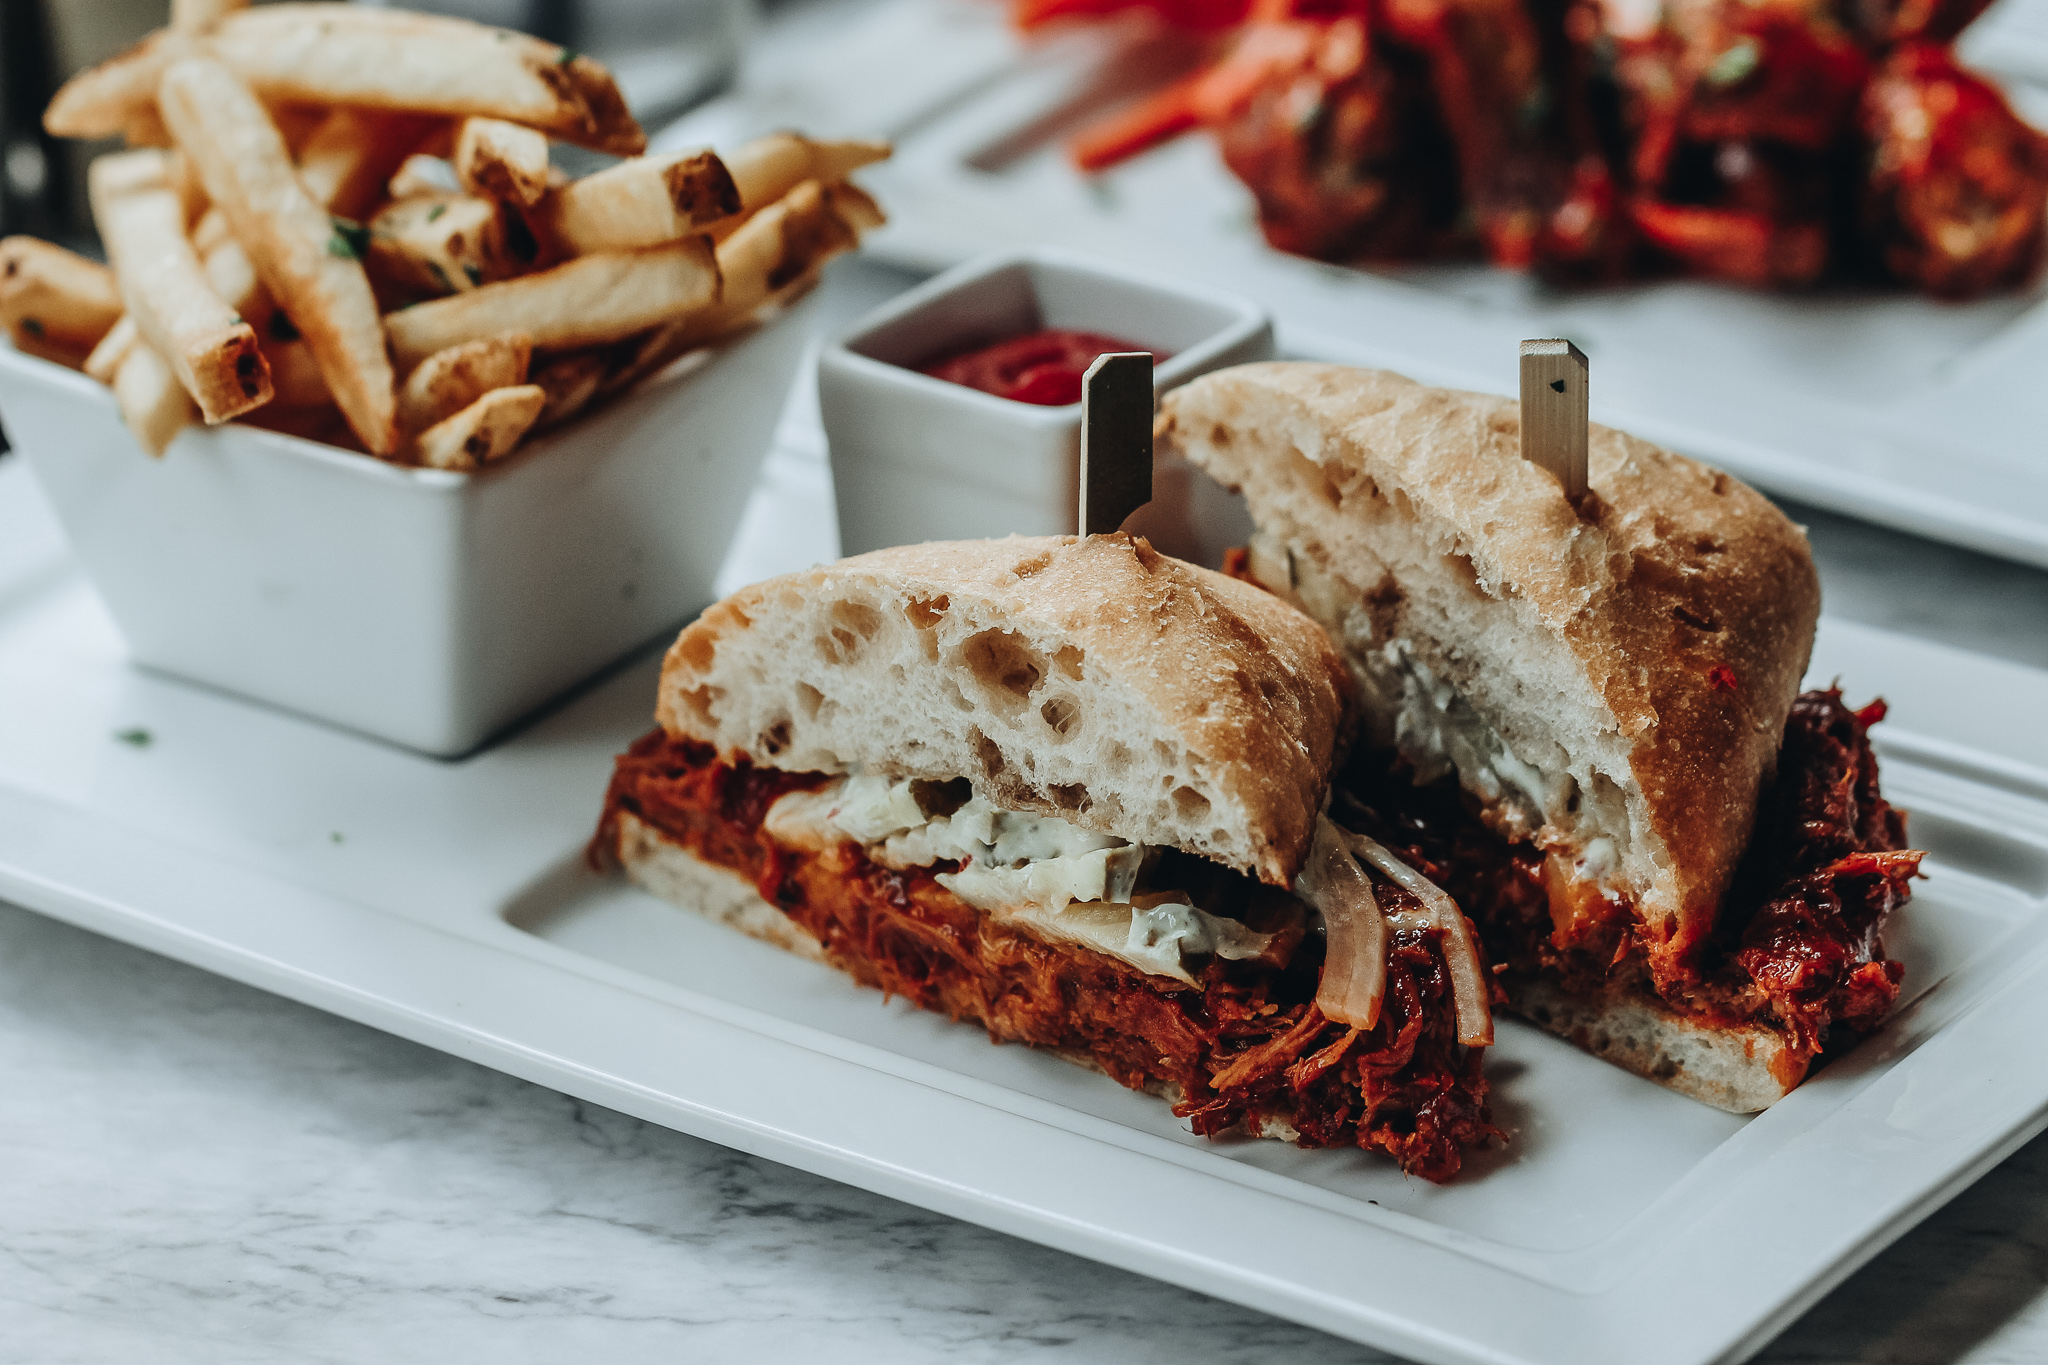 Cambria Dallas Hotel    Smoked Pulled Pork Sandwich  with Spicy Pickles, Onion, Jalapeno Aioli and Fries